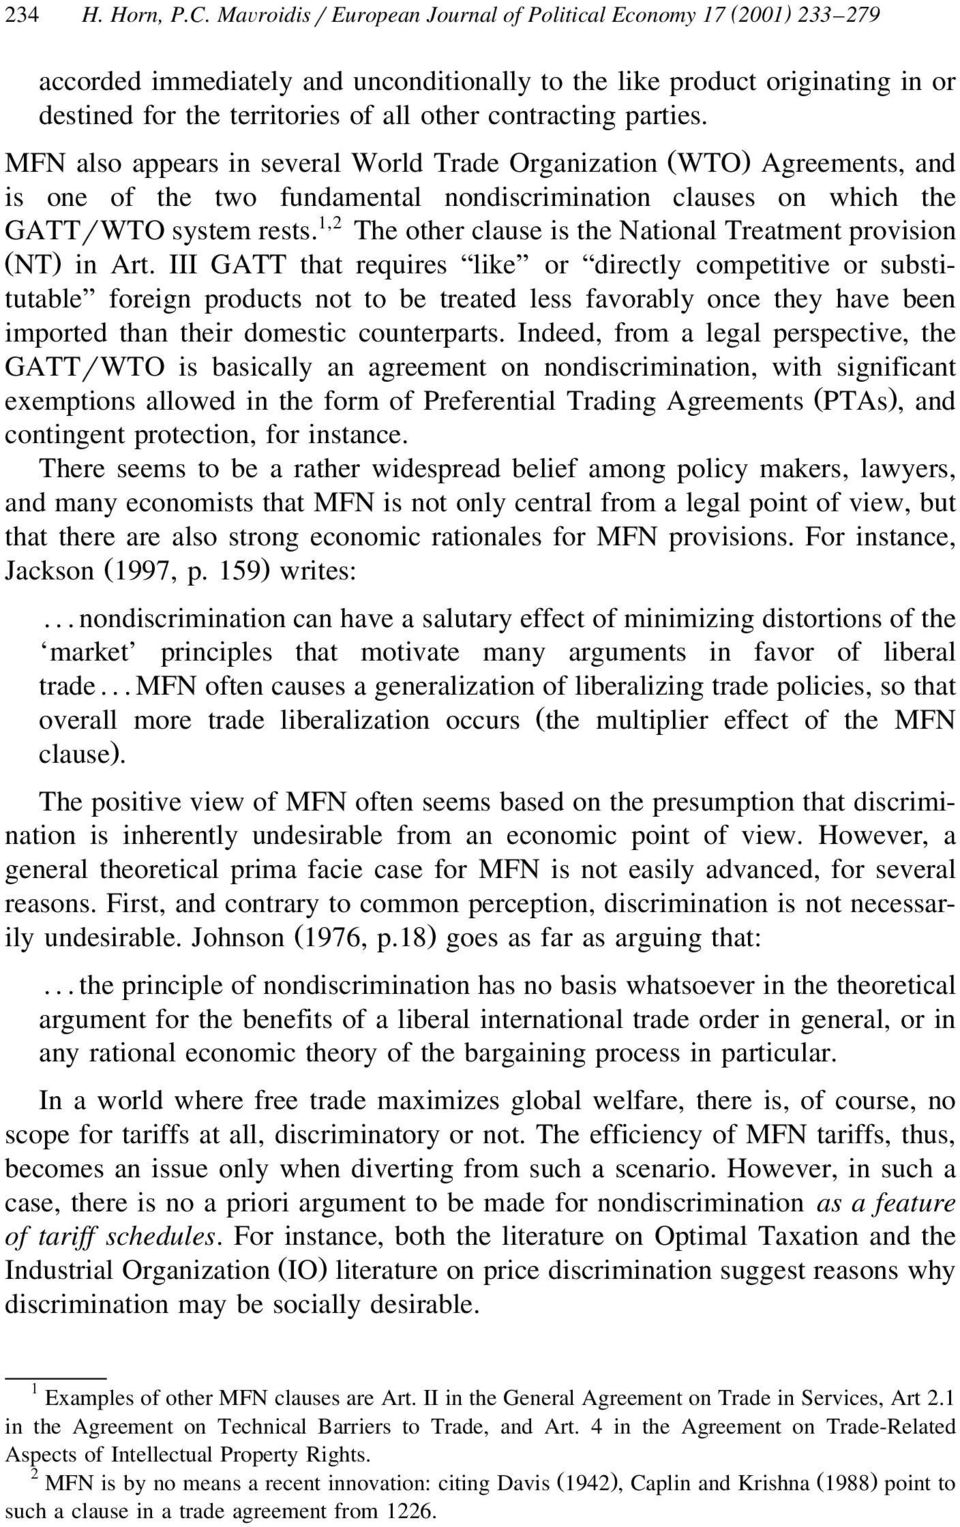 parties. MFN also appears in several World Trade Organization Ž WTO. Agreements, and is one of the two fundamental nondiscrimination clauses on which the GATTrWTO system rests.